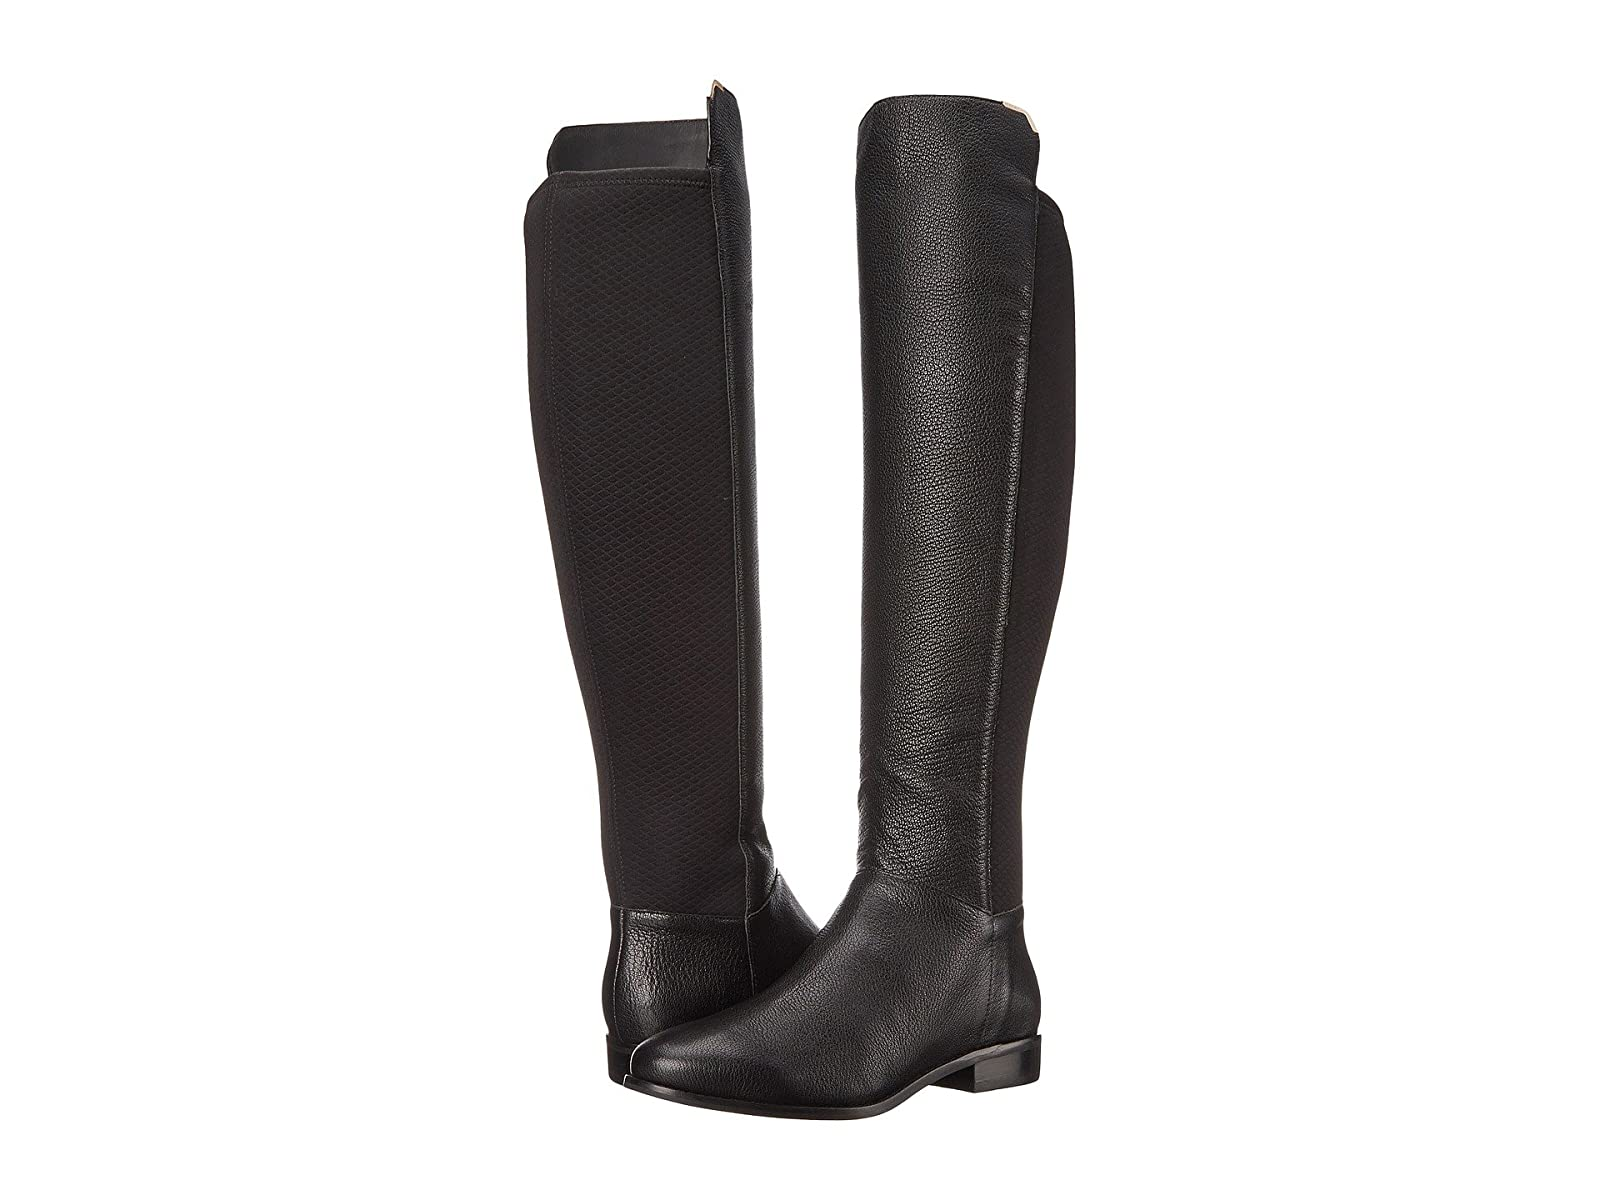 Cole Haan Dutchess Over The Knee BootCheap and distinctive eye-catching shoes